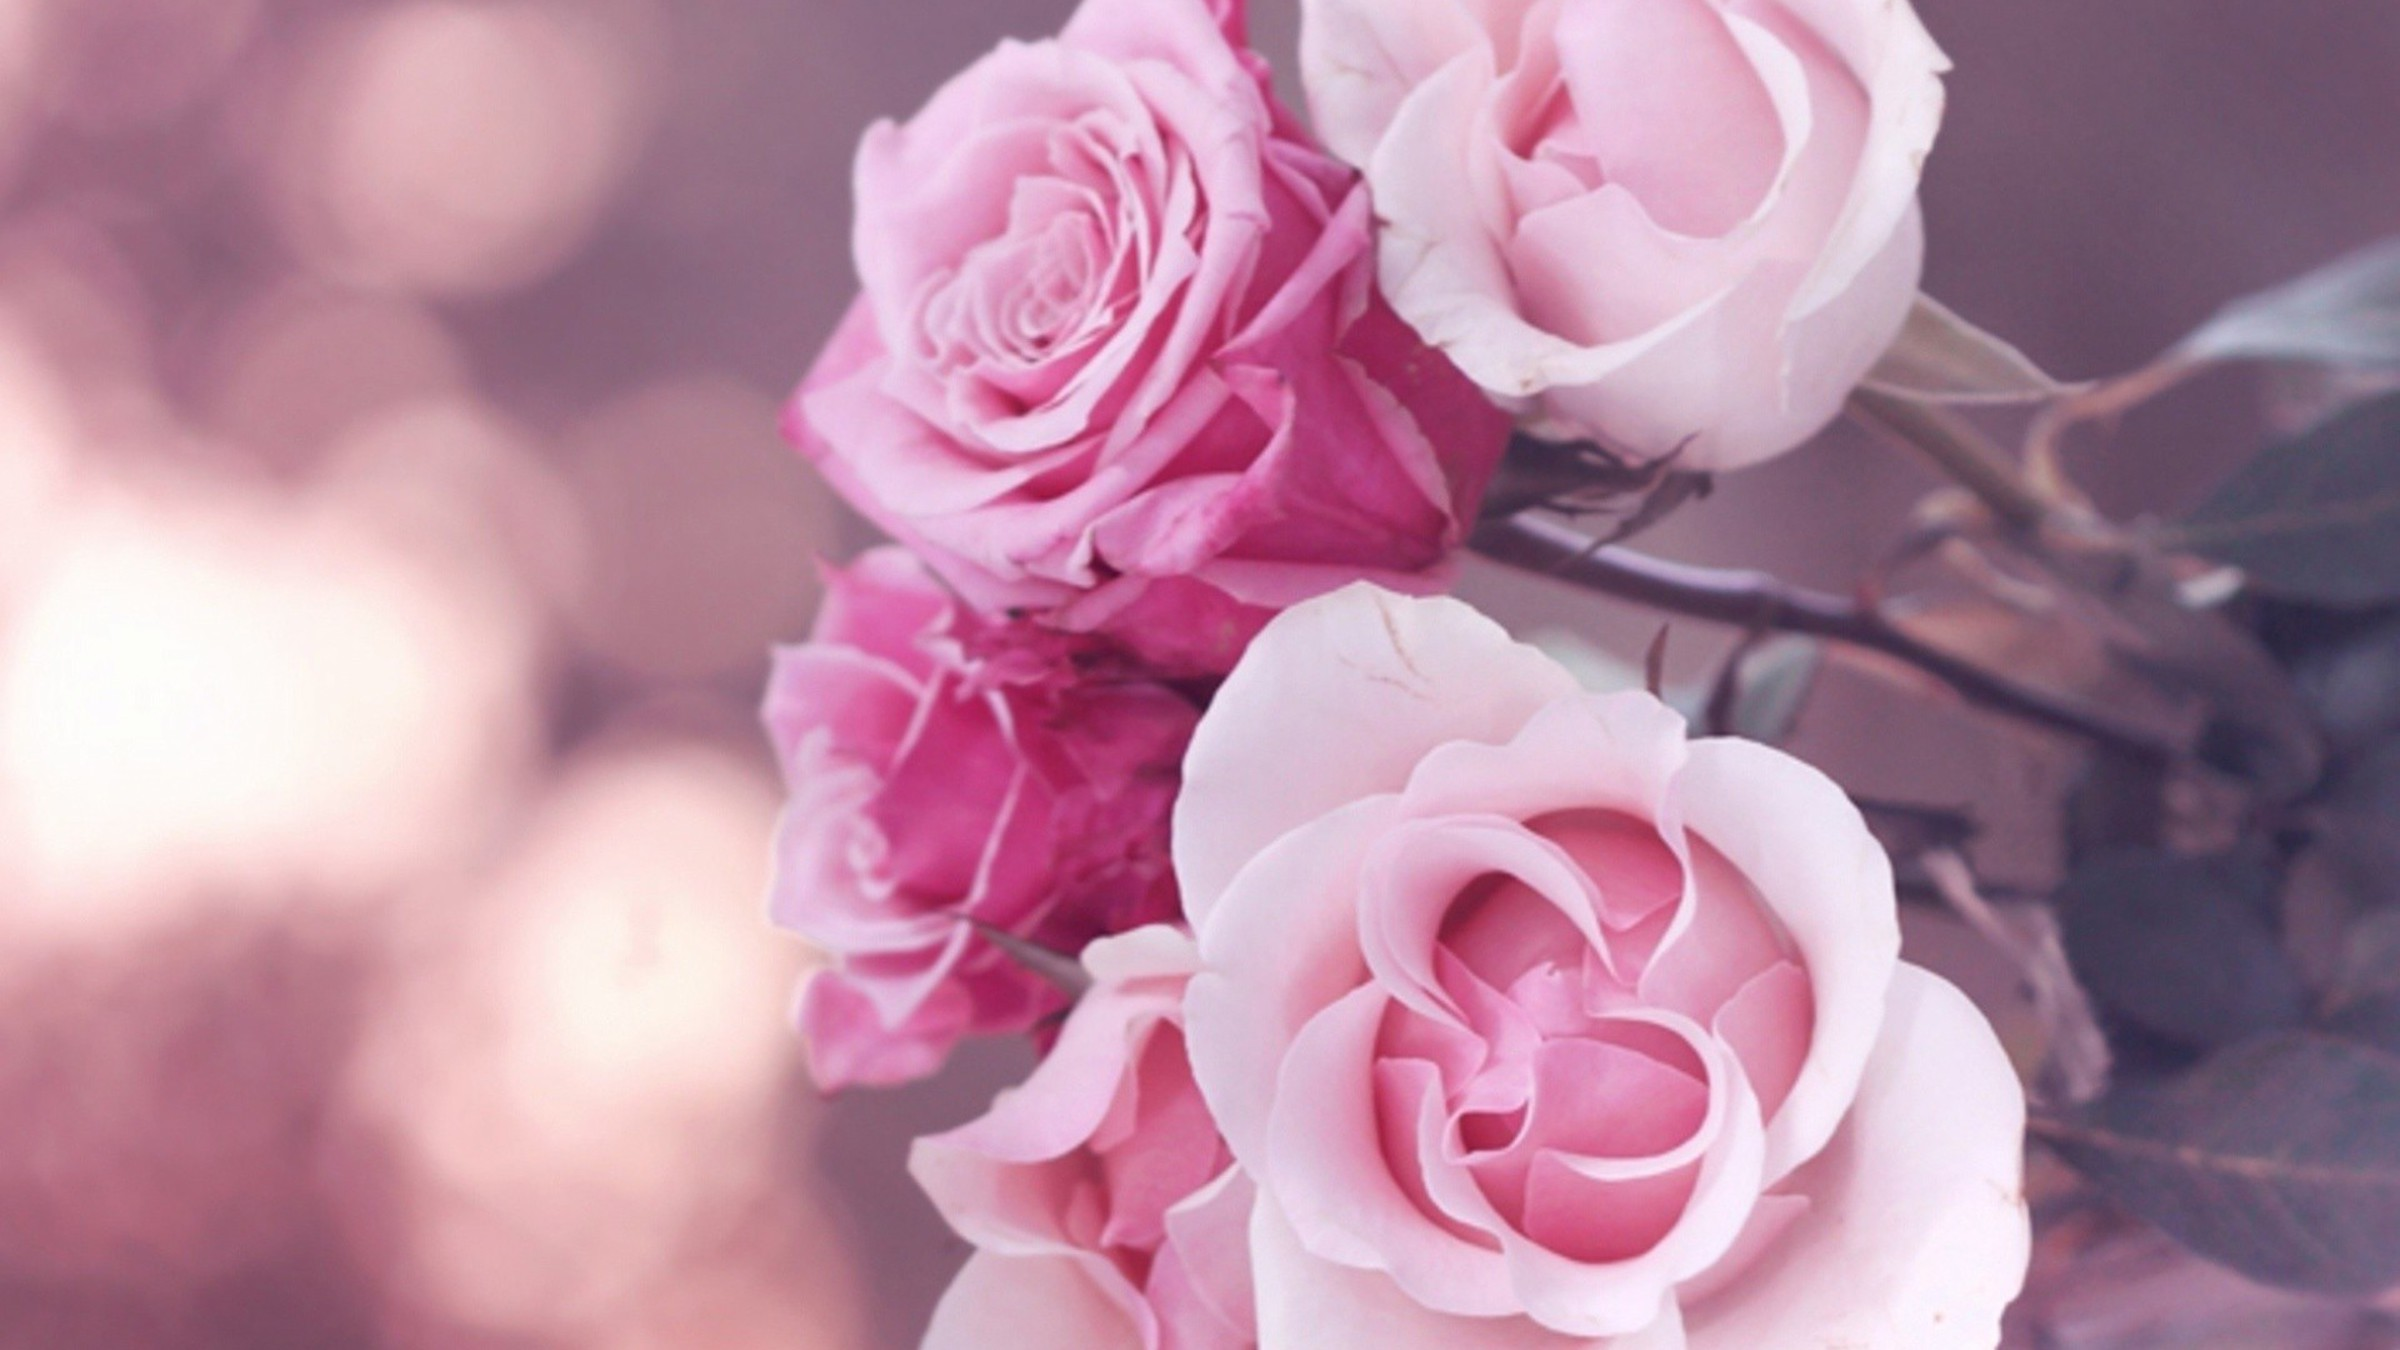 Flowers roses pink rose wallpaper allwallpaper 6809 pc en wallpaper resolutions mightylinksfo